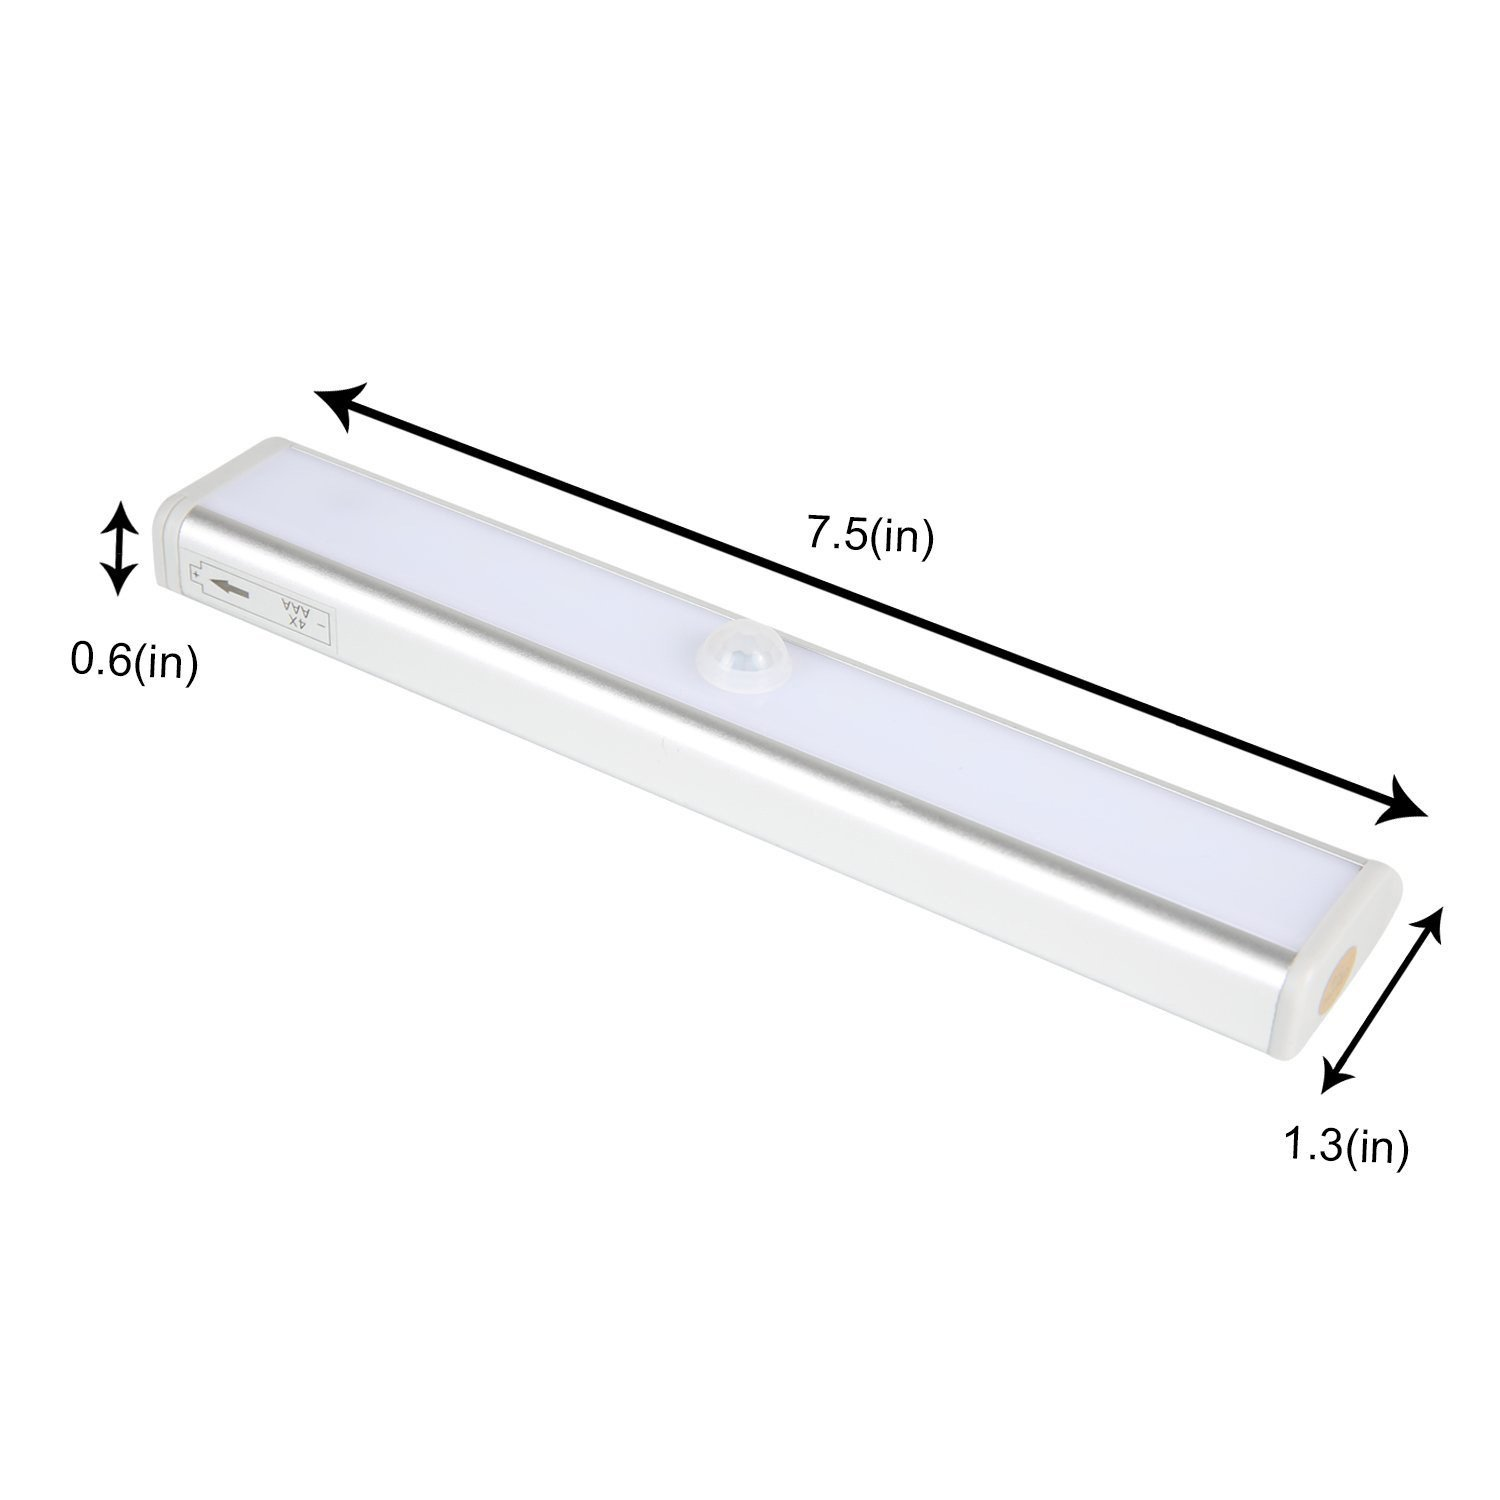 Motion Sensor Closet Lights, Stick-on Anywhere,10 LED Wireless Battery Operated Night Light for Cabinet, Closet, Stairs, Step Light,2 Pack by TDH (Image #3)